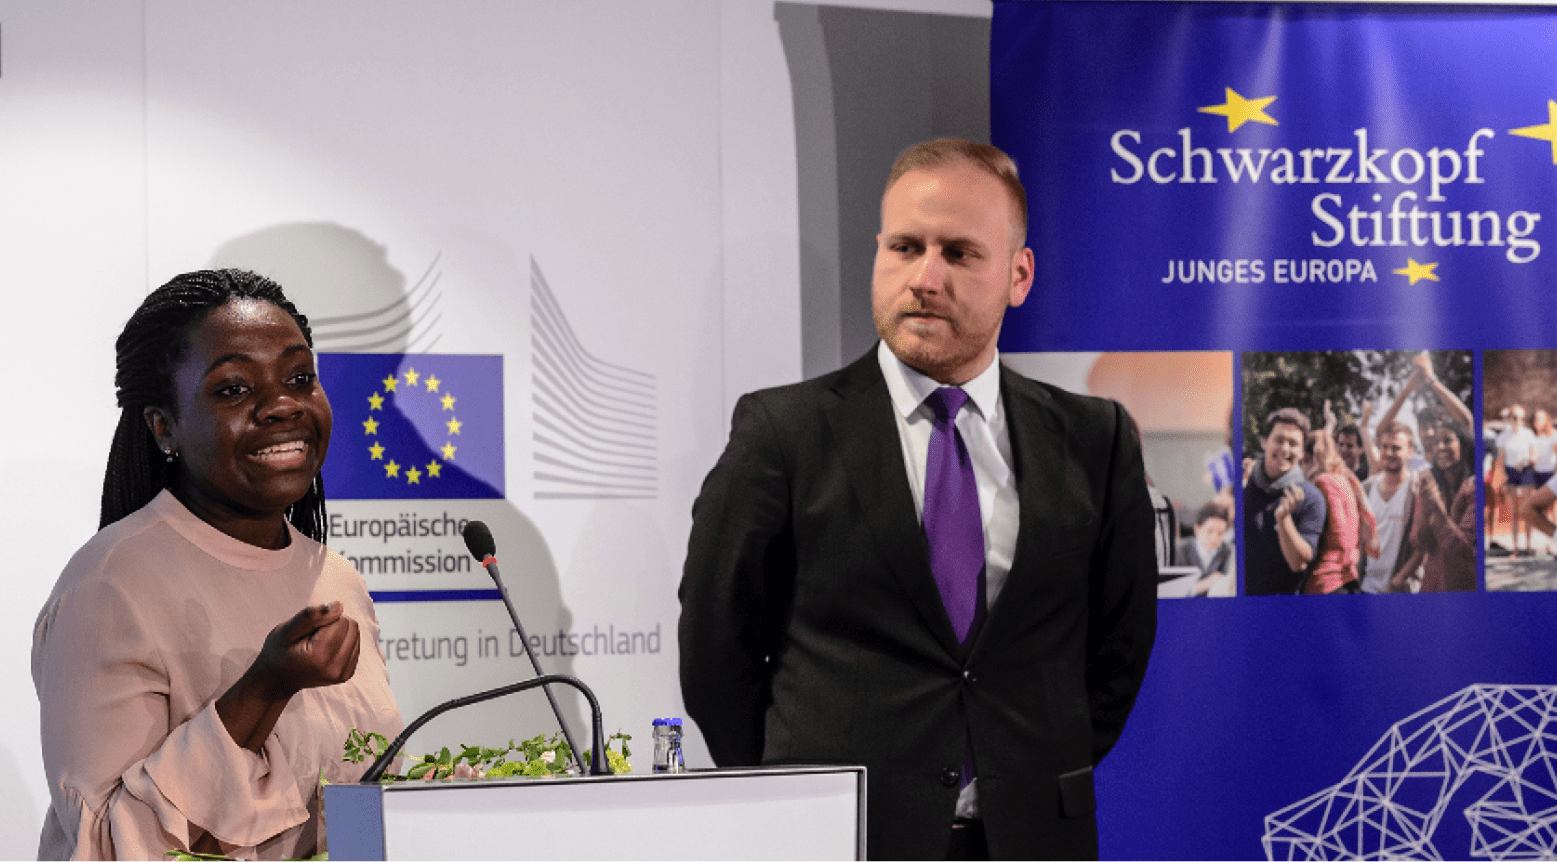 Schwarzkopf Foundation's Young European of the Year 2020 Award (up to €5,000)